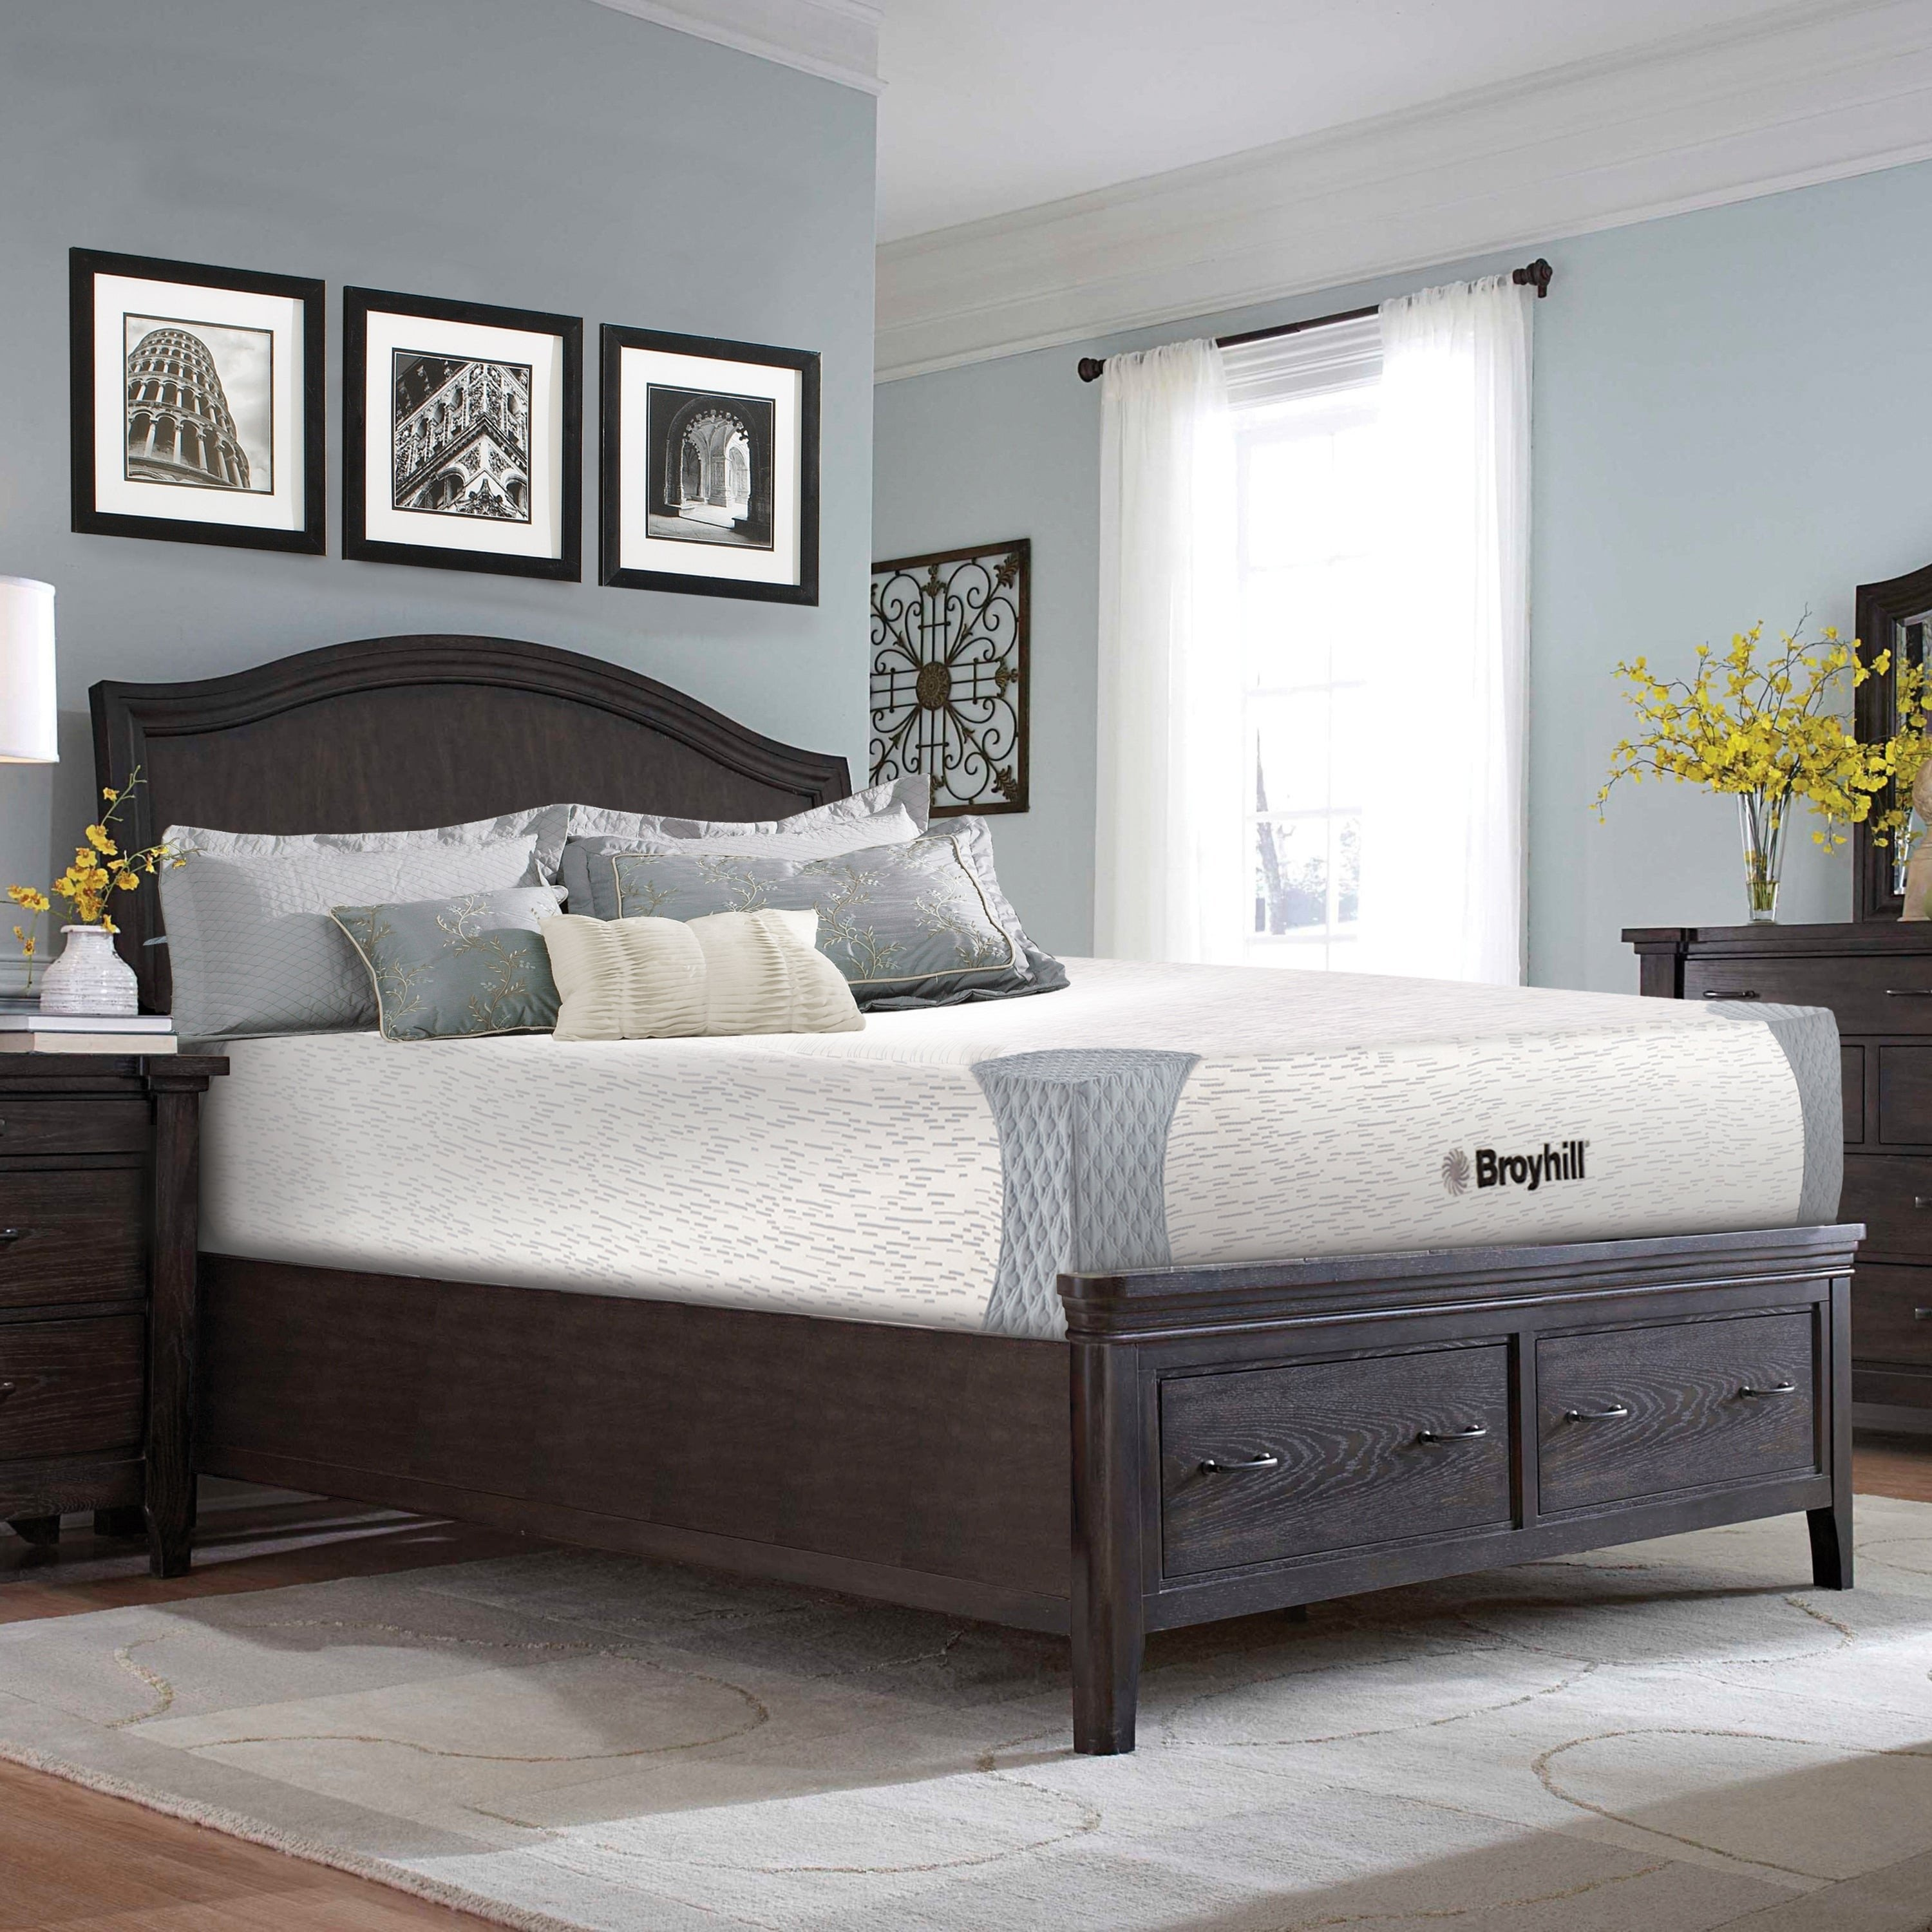 Broyhill King Bedroom Set Awesome Buy Broyhill Mattresses Sale Line at Overstock